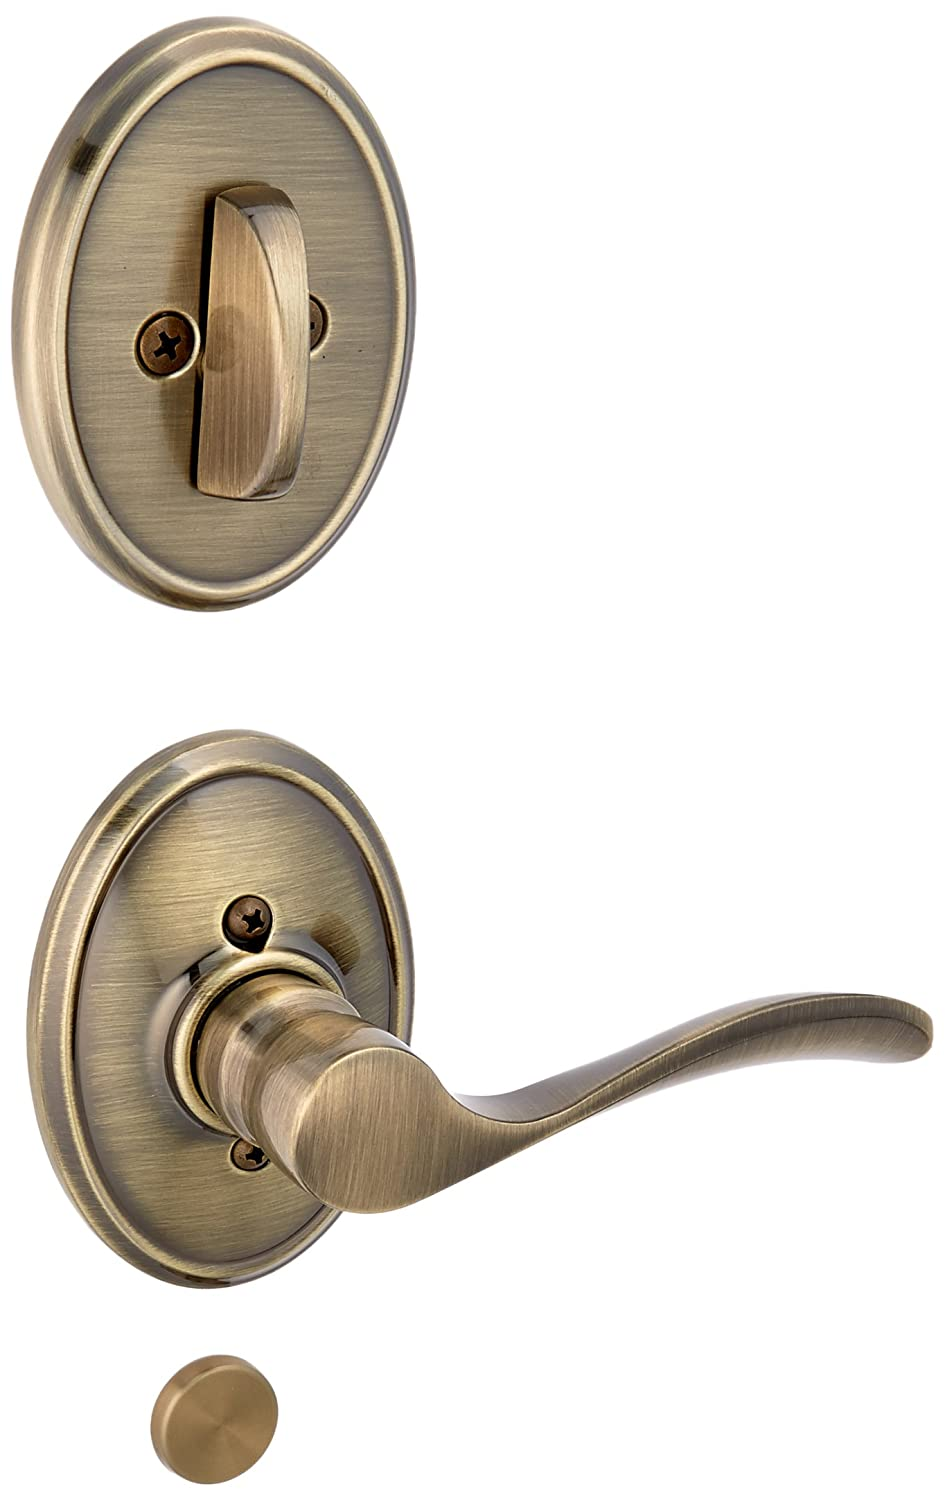 Schlage Lock Company F94CHP609WKFRH Antique Brass Interior Pack Champagne Lever Right Handed Dummy Interior Pack with Deadbolt Cover Plate and Decorative Wakefield Rose